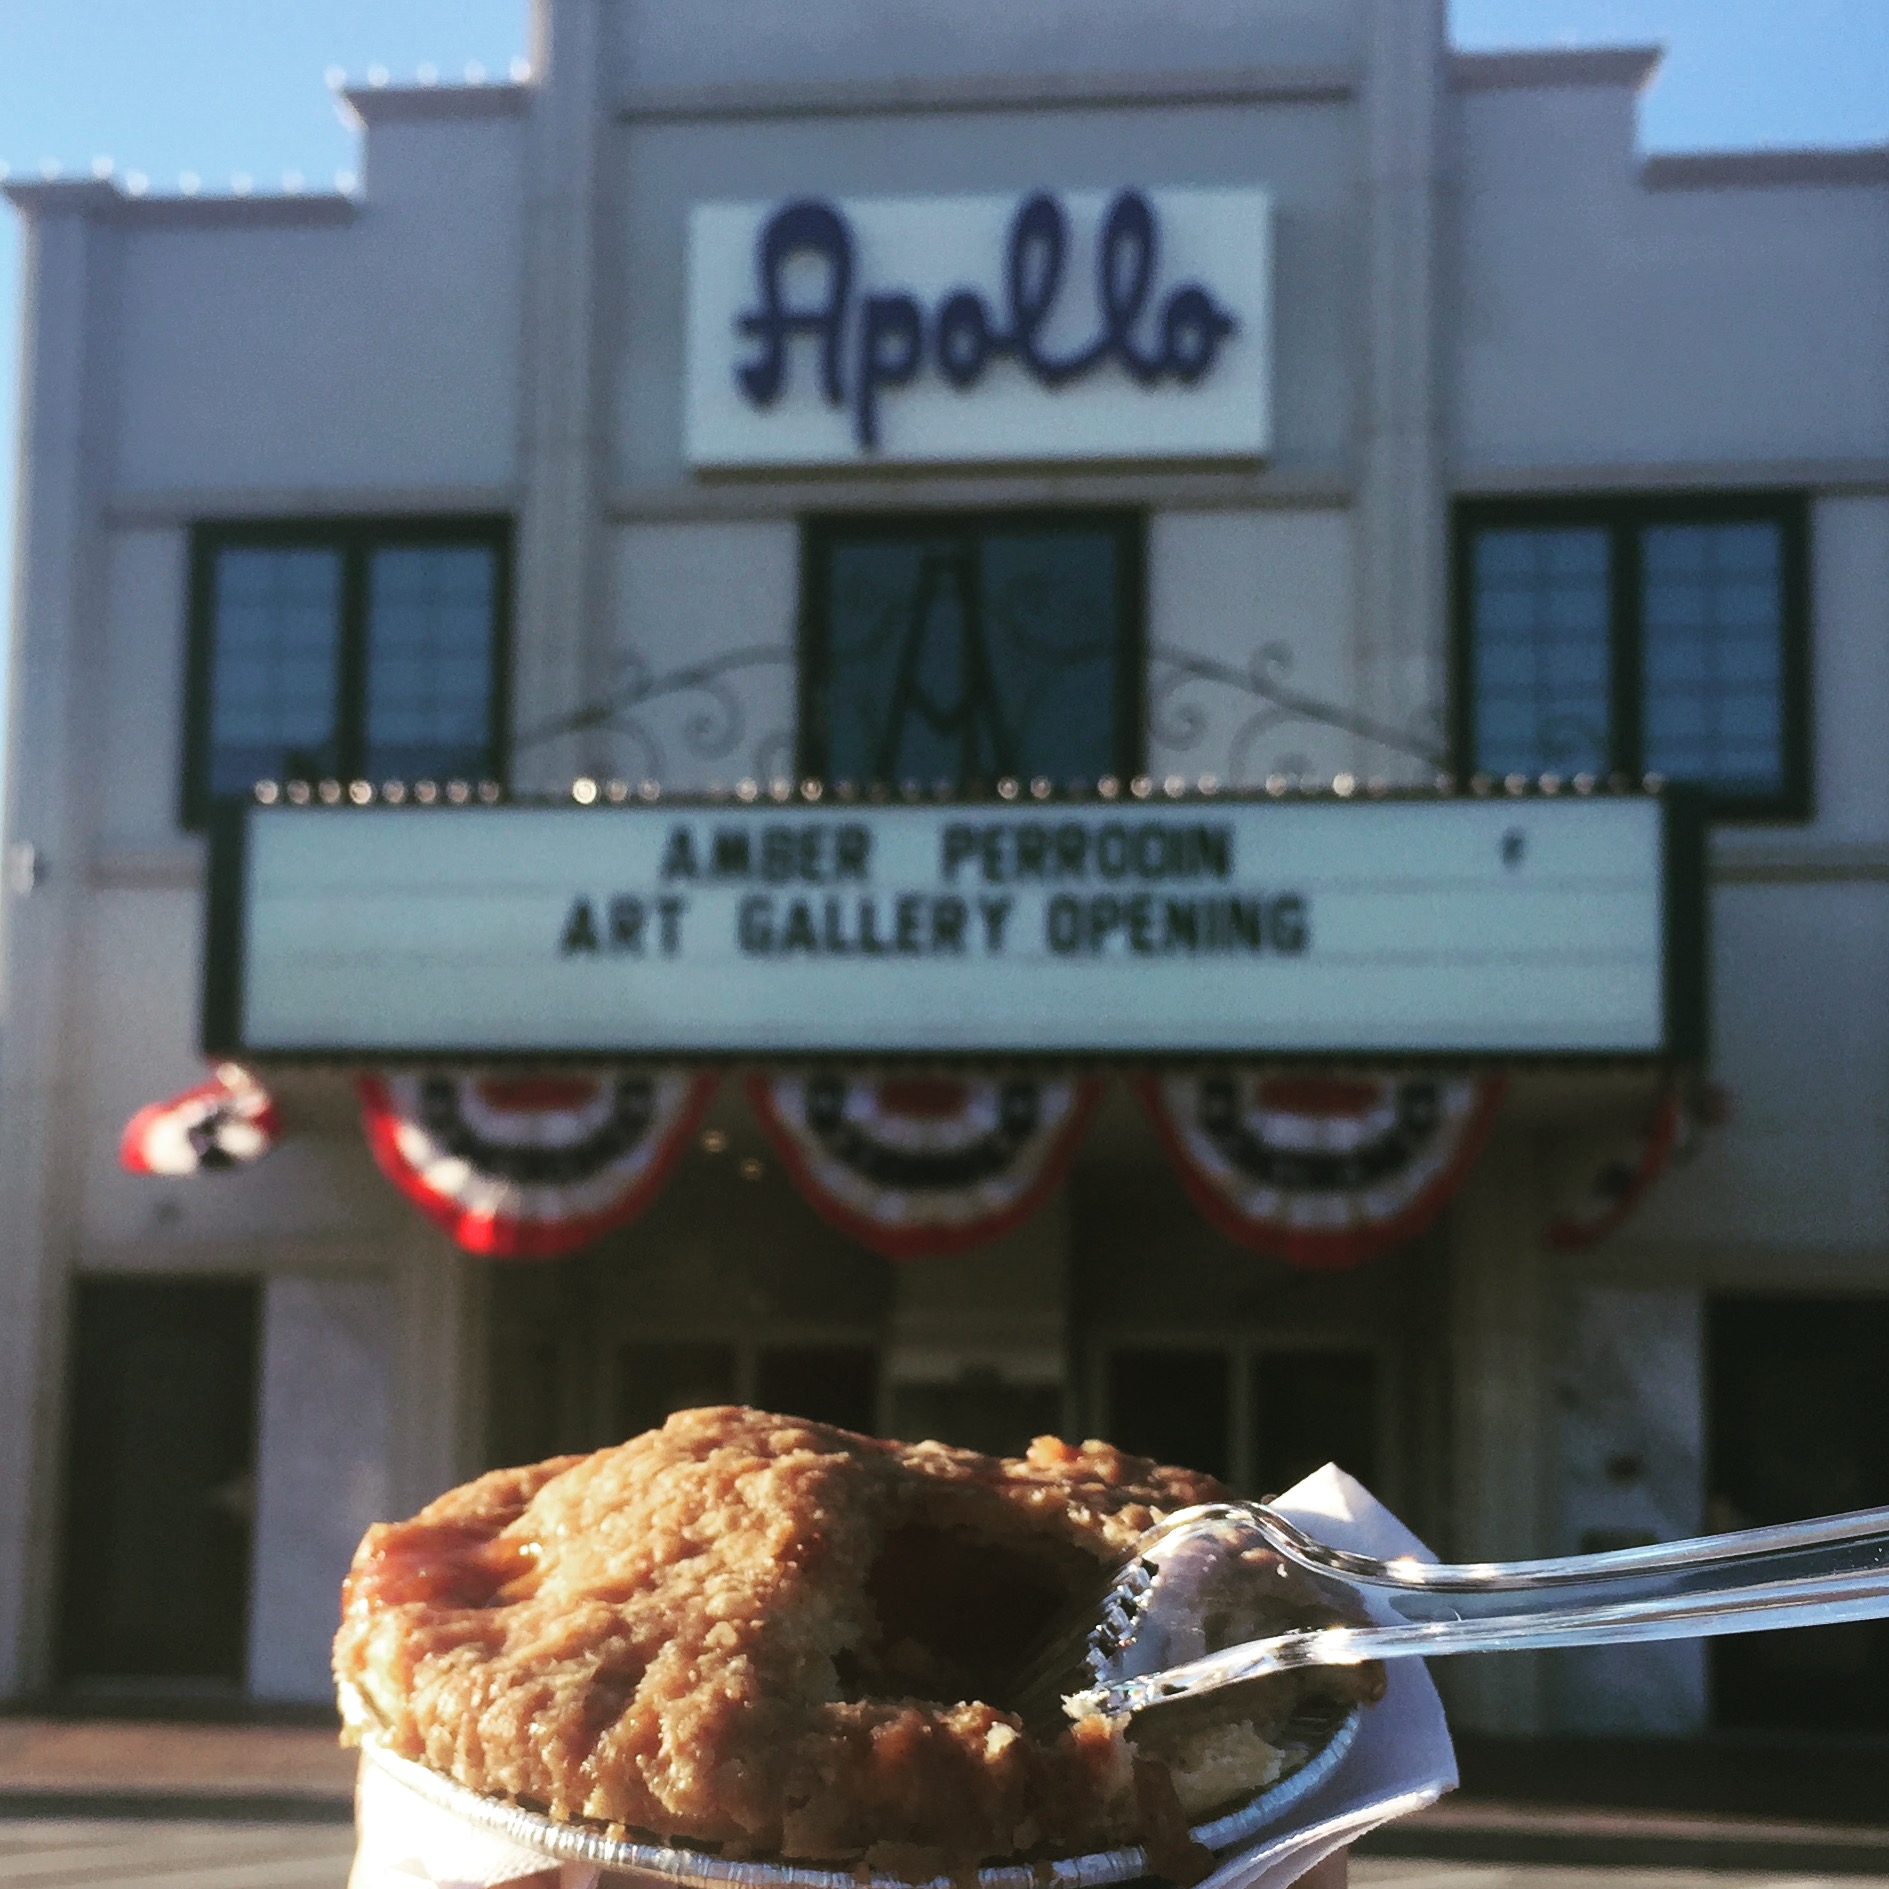 Image of a marquee at the Apollo in downtown Springdale, AR